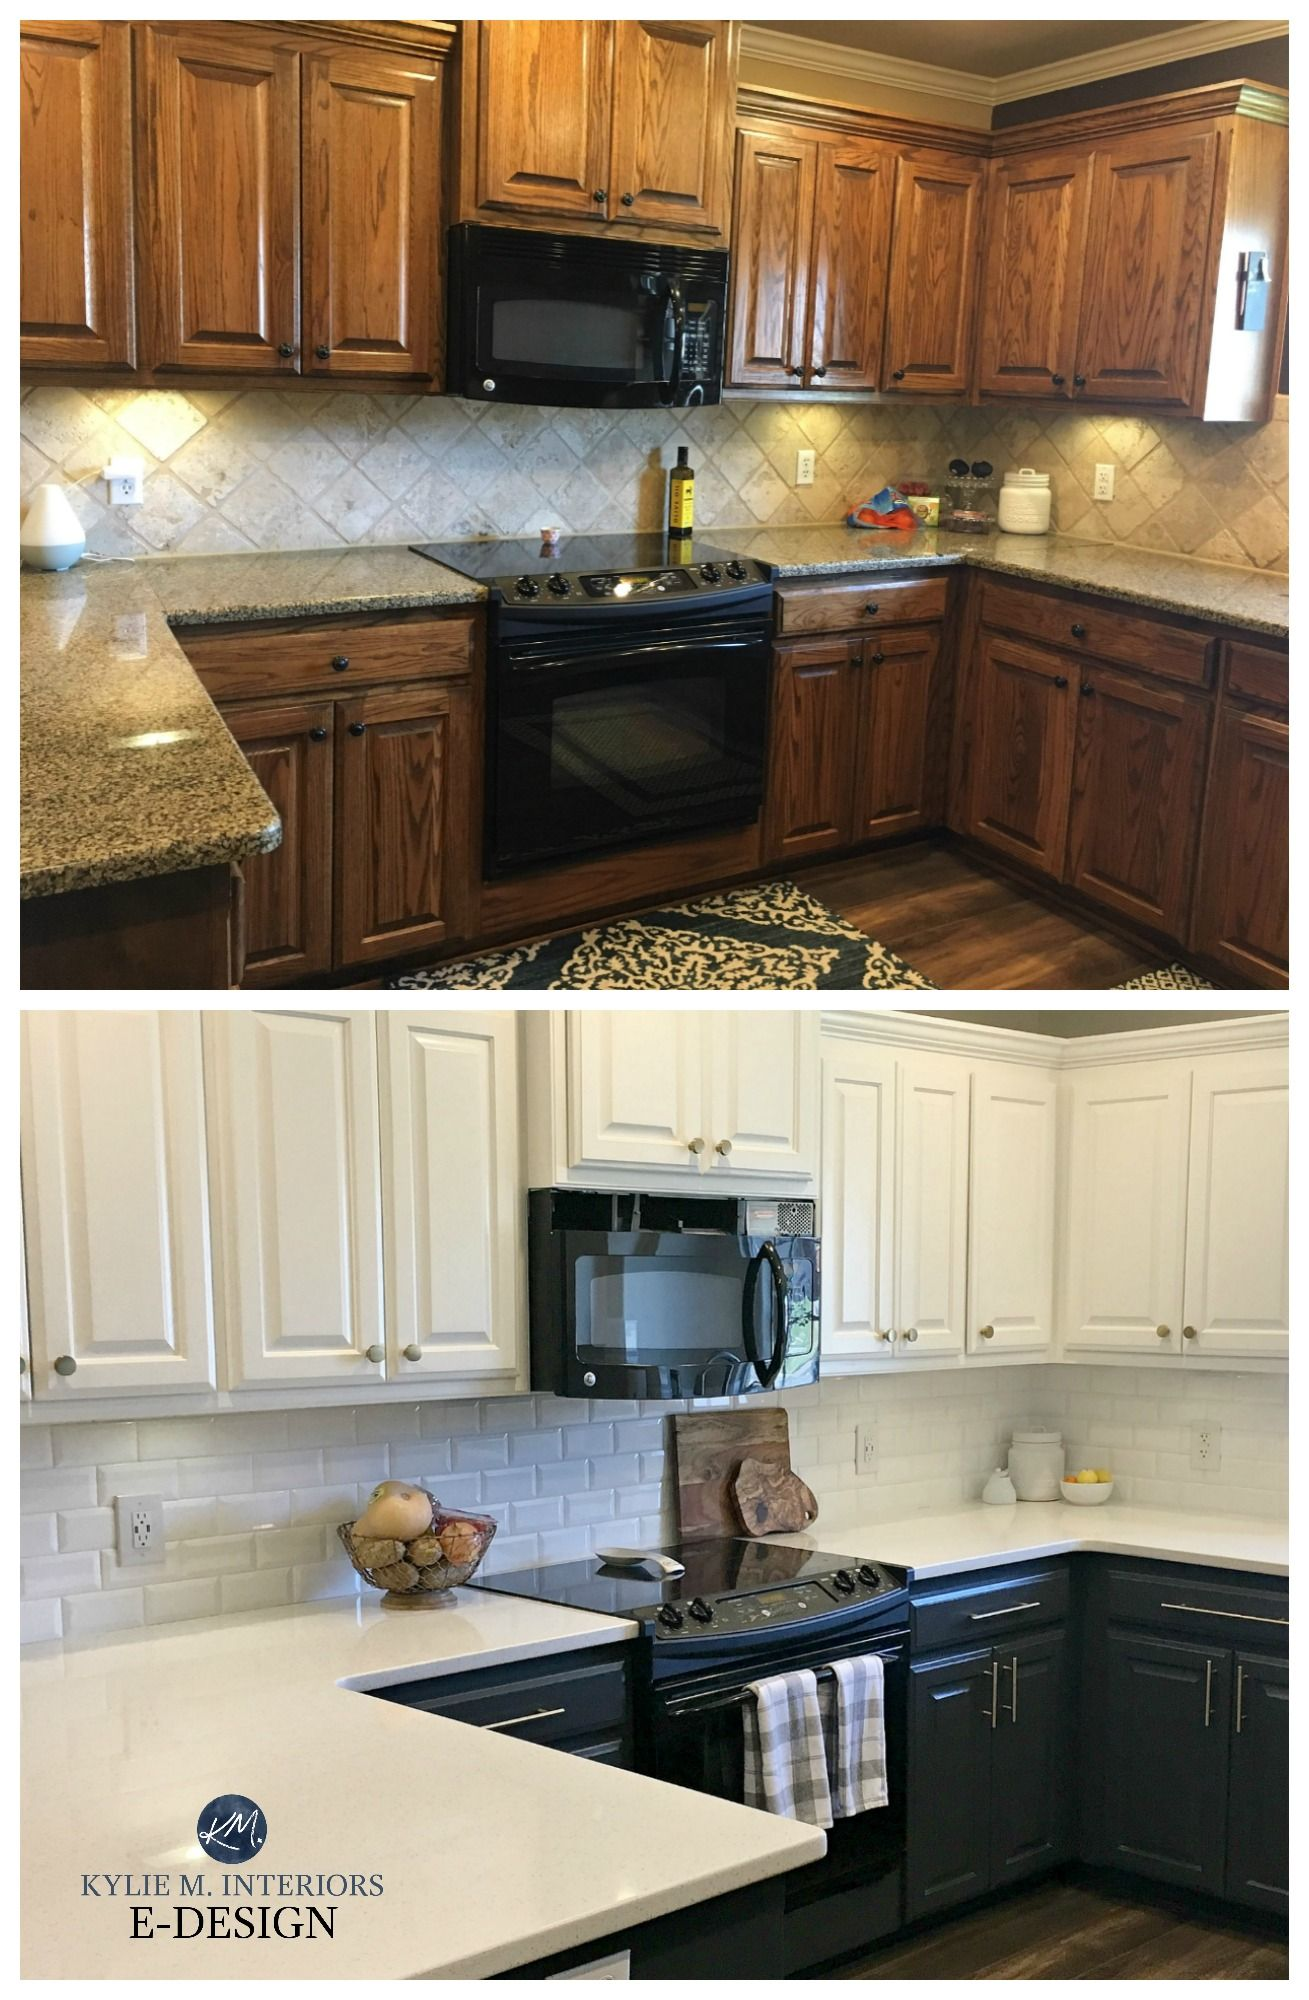 4 Ideas How To Update Oak Wood Cabinets Kitchen Cabinets Before And After Stained Kitchen Cabinets Kitchen Cabinets With Black Appliances